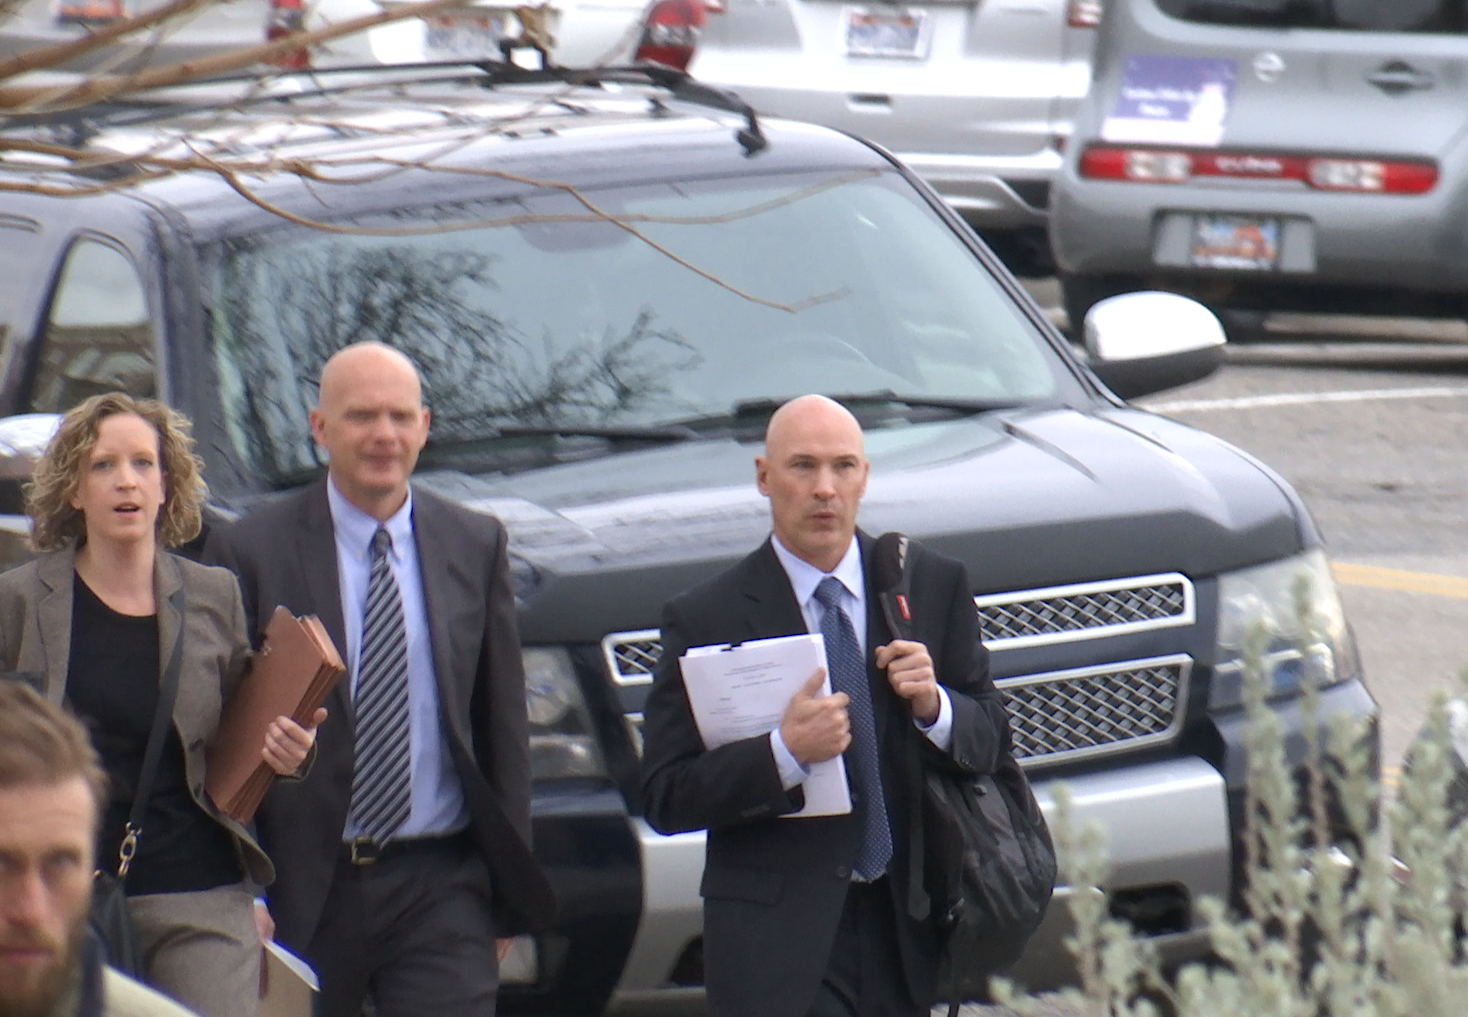 Assistant U.S. Attorney Robert Lund (right) arriving at the courthouse Wednesday morning, St. George, Utah, Jan. 4, 2017 | Photo by Sheldon Demke, St. George News